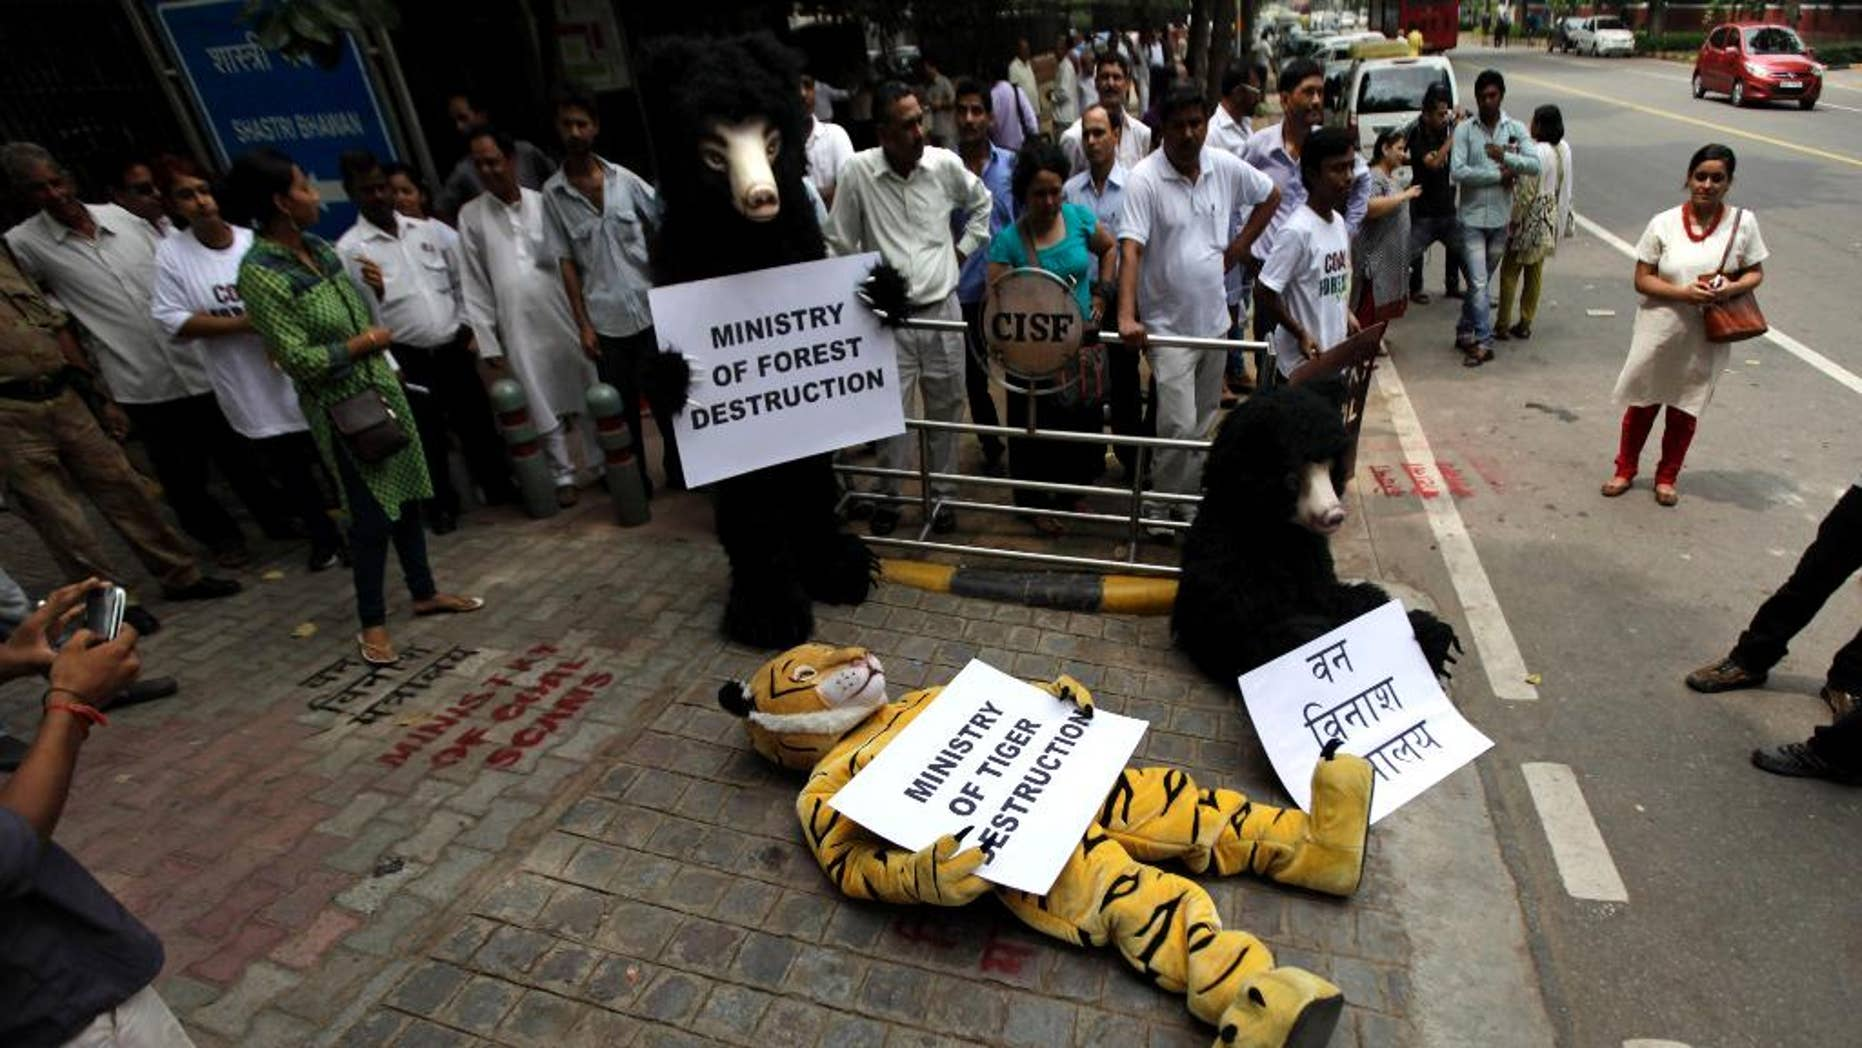 In this Tuesday, Sept. 11, 2012, file photo, Greenpeace activists dressed as wild animals hold placards during a protest outside the office of the Indian Coal Minister demanding a halt in allocation of forest land for coal mining, in New Delhi, India. A court has ordered the Indian government to release $300,000 sent by Greenpeace's foreign partners for use in India by the environmental group. (AP Photo/Altaf Qadri)